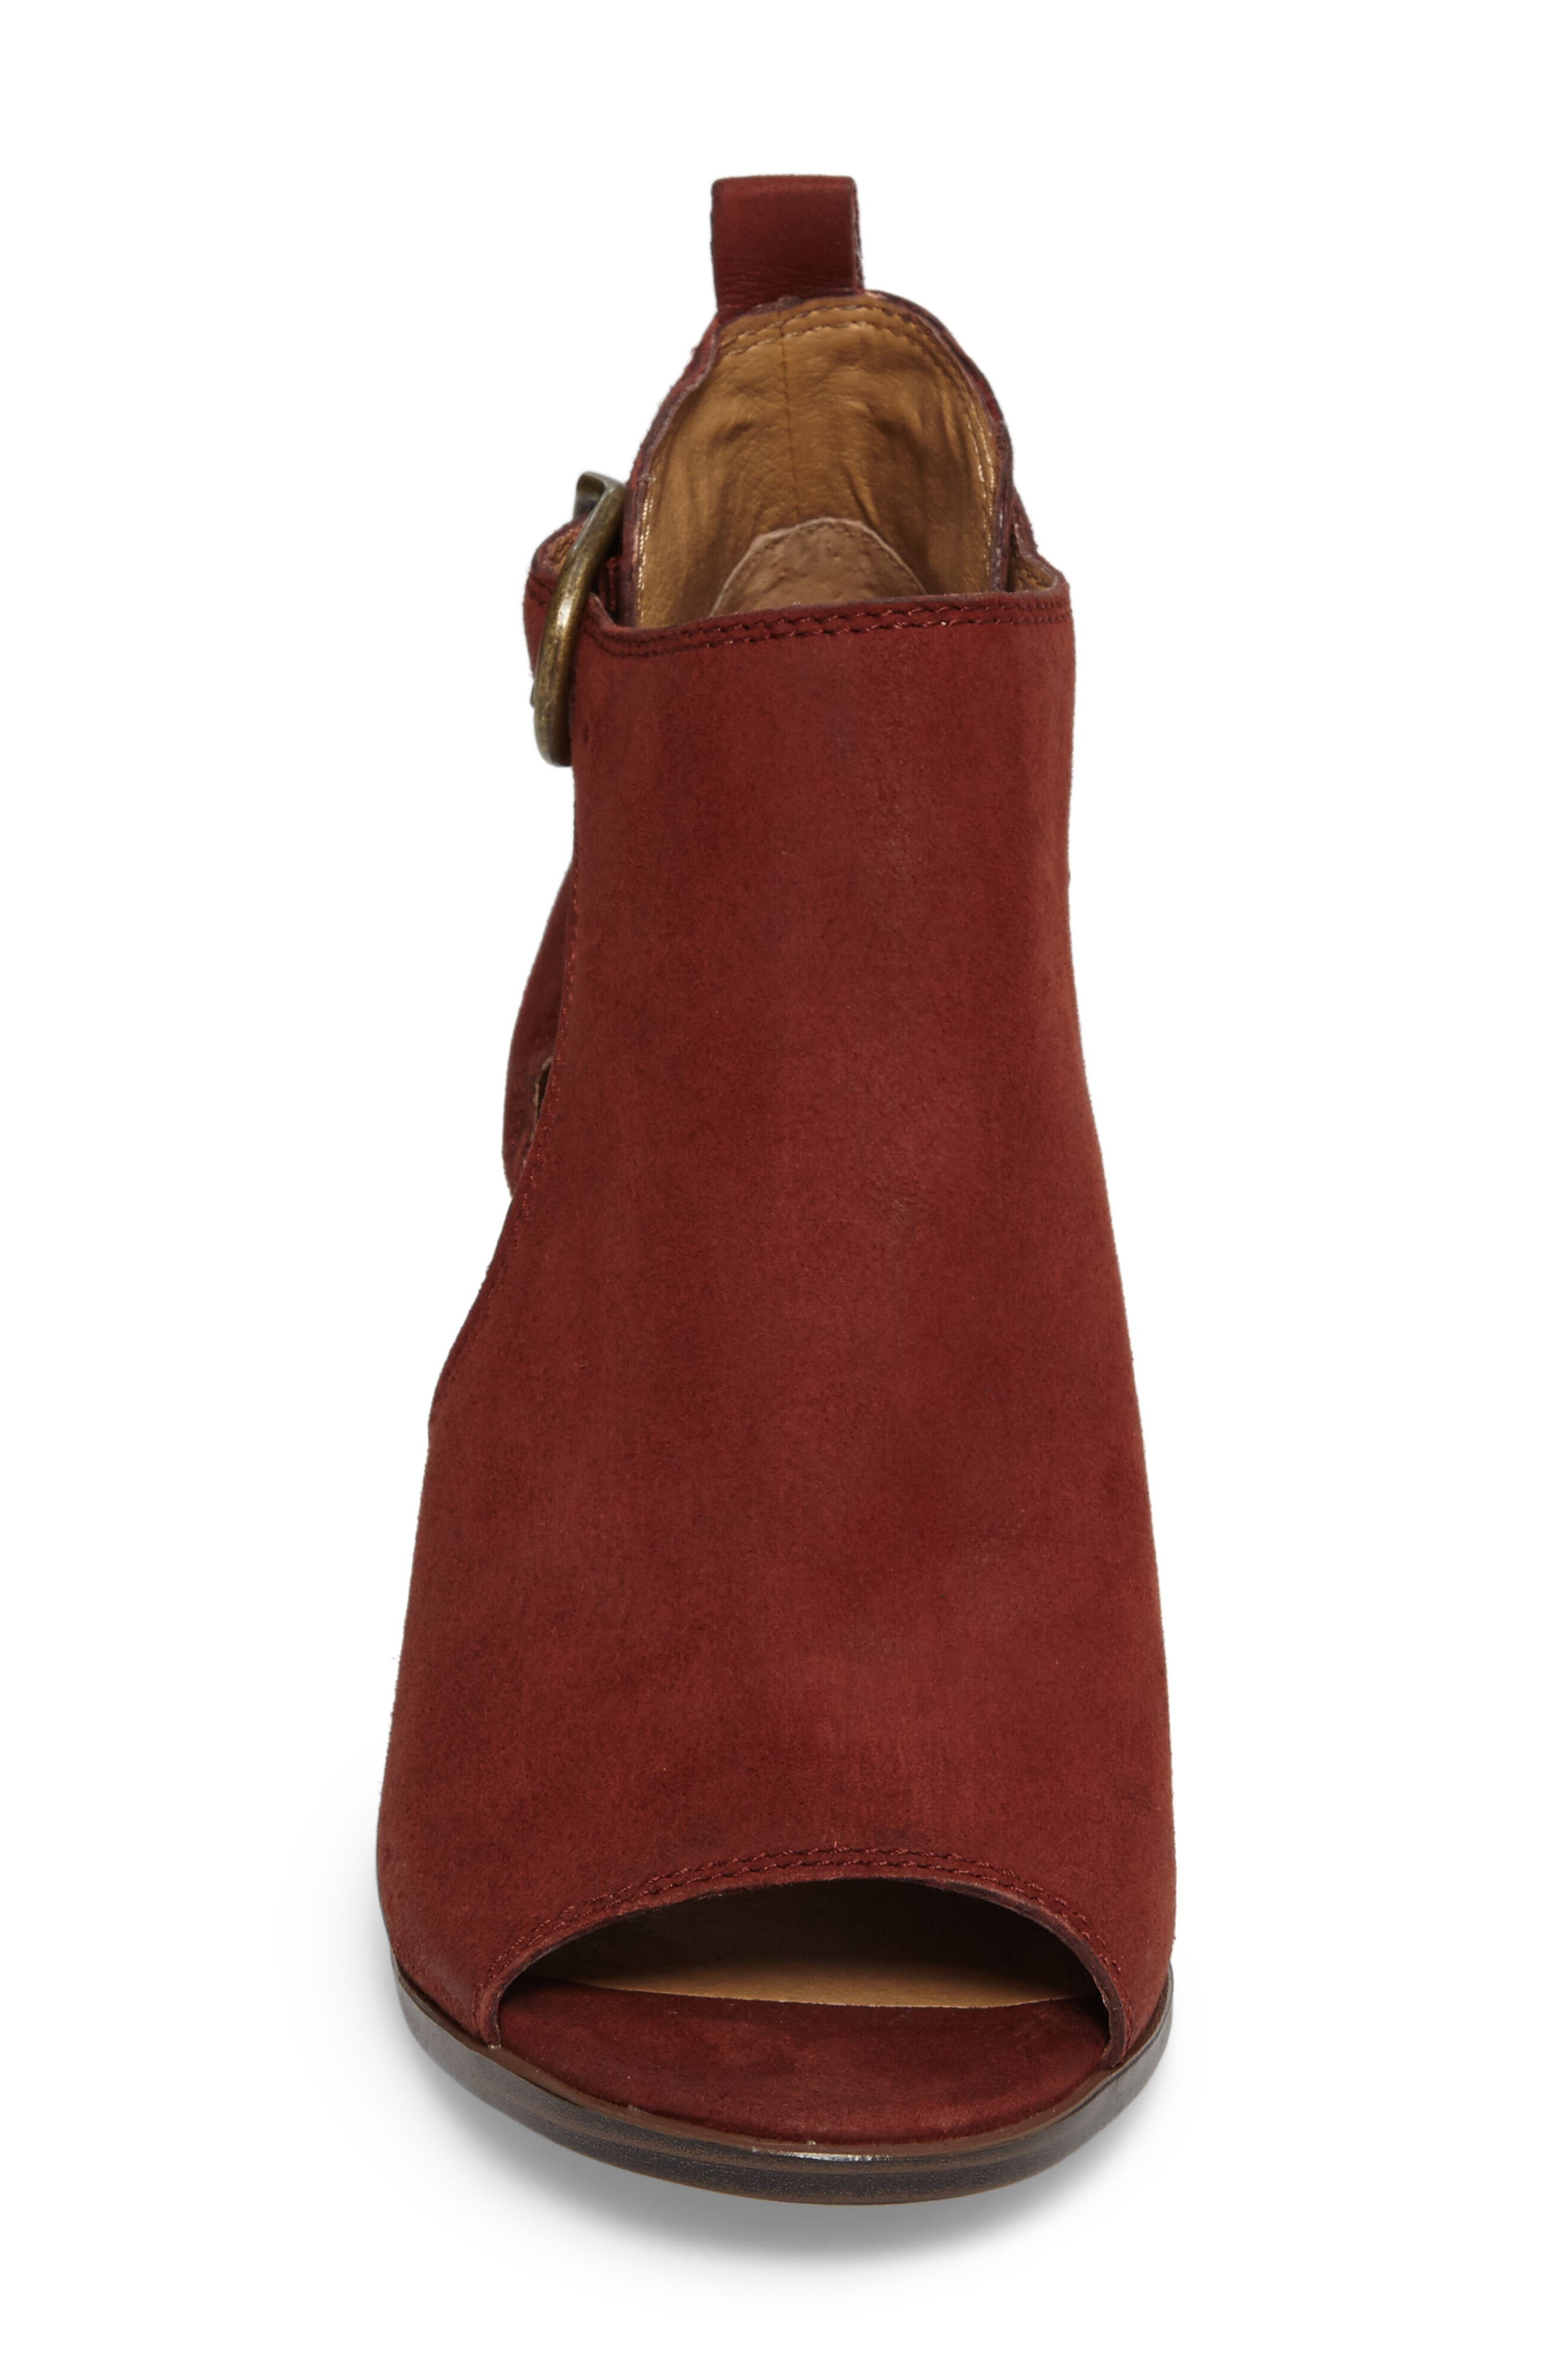 Oona Open Side Bootie,                             Alternate thumbnail 4, color,                             Sable Leather